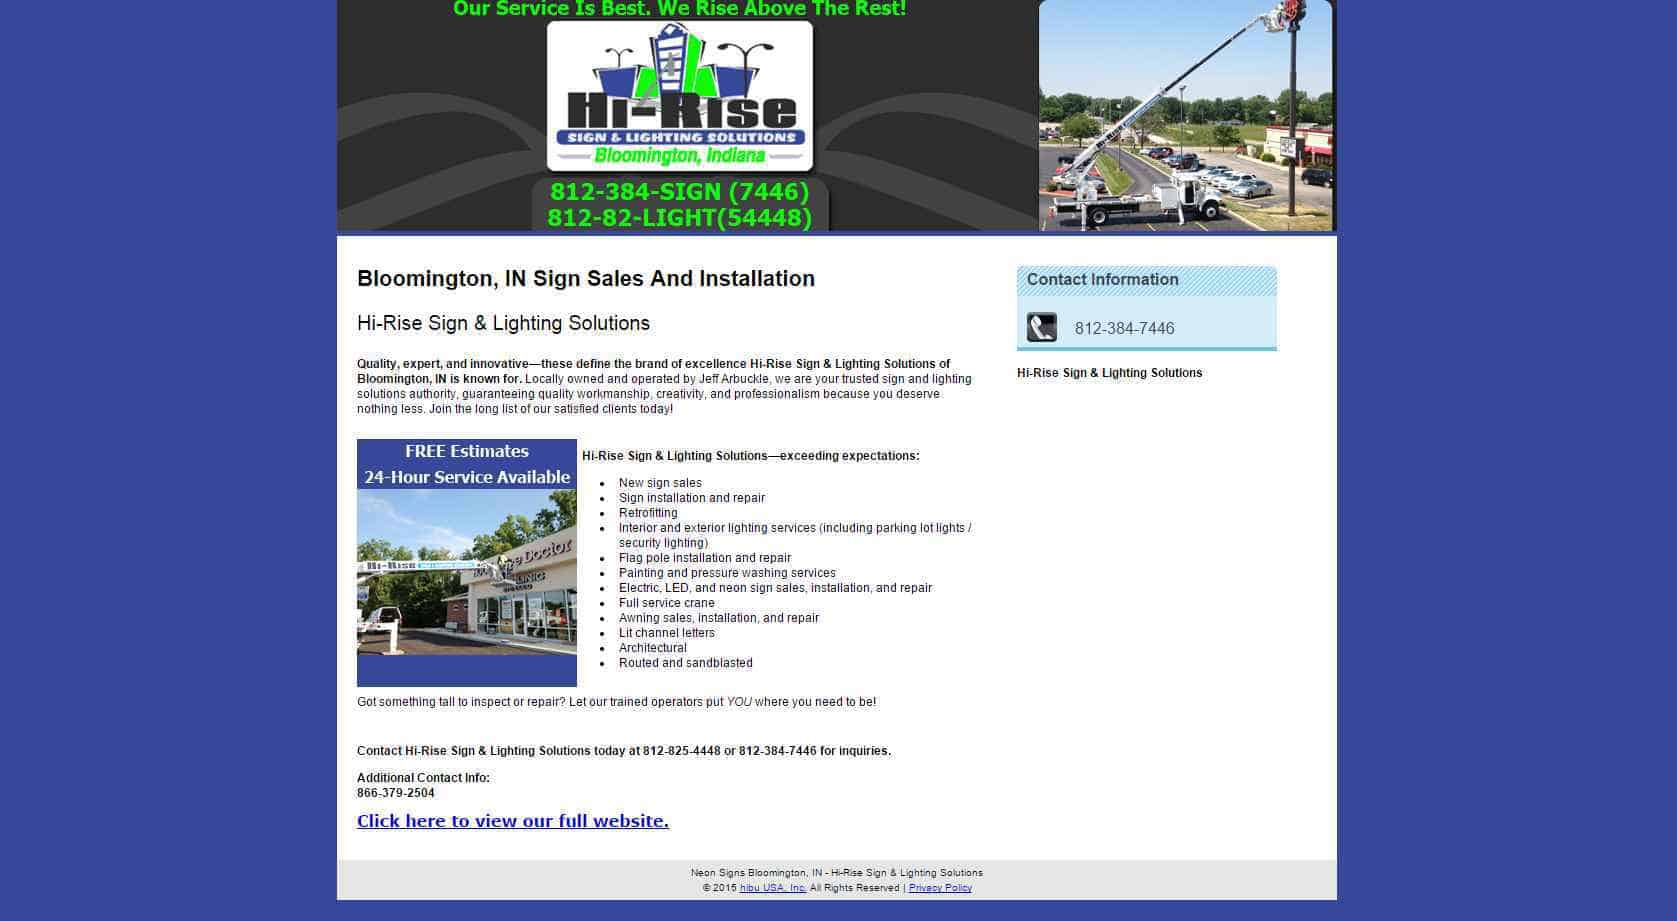 Hi Rise Sign and Lighting Solutions previous website